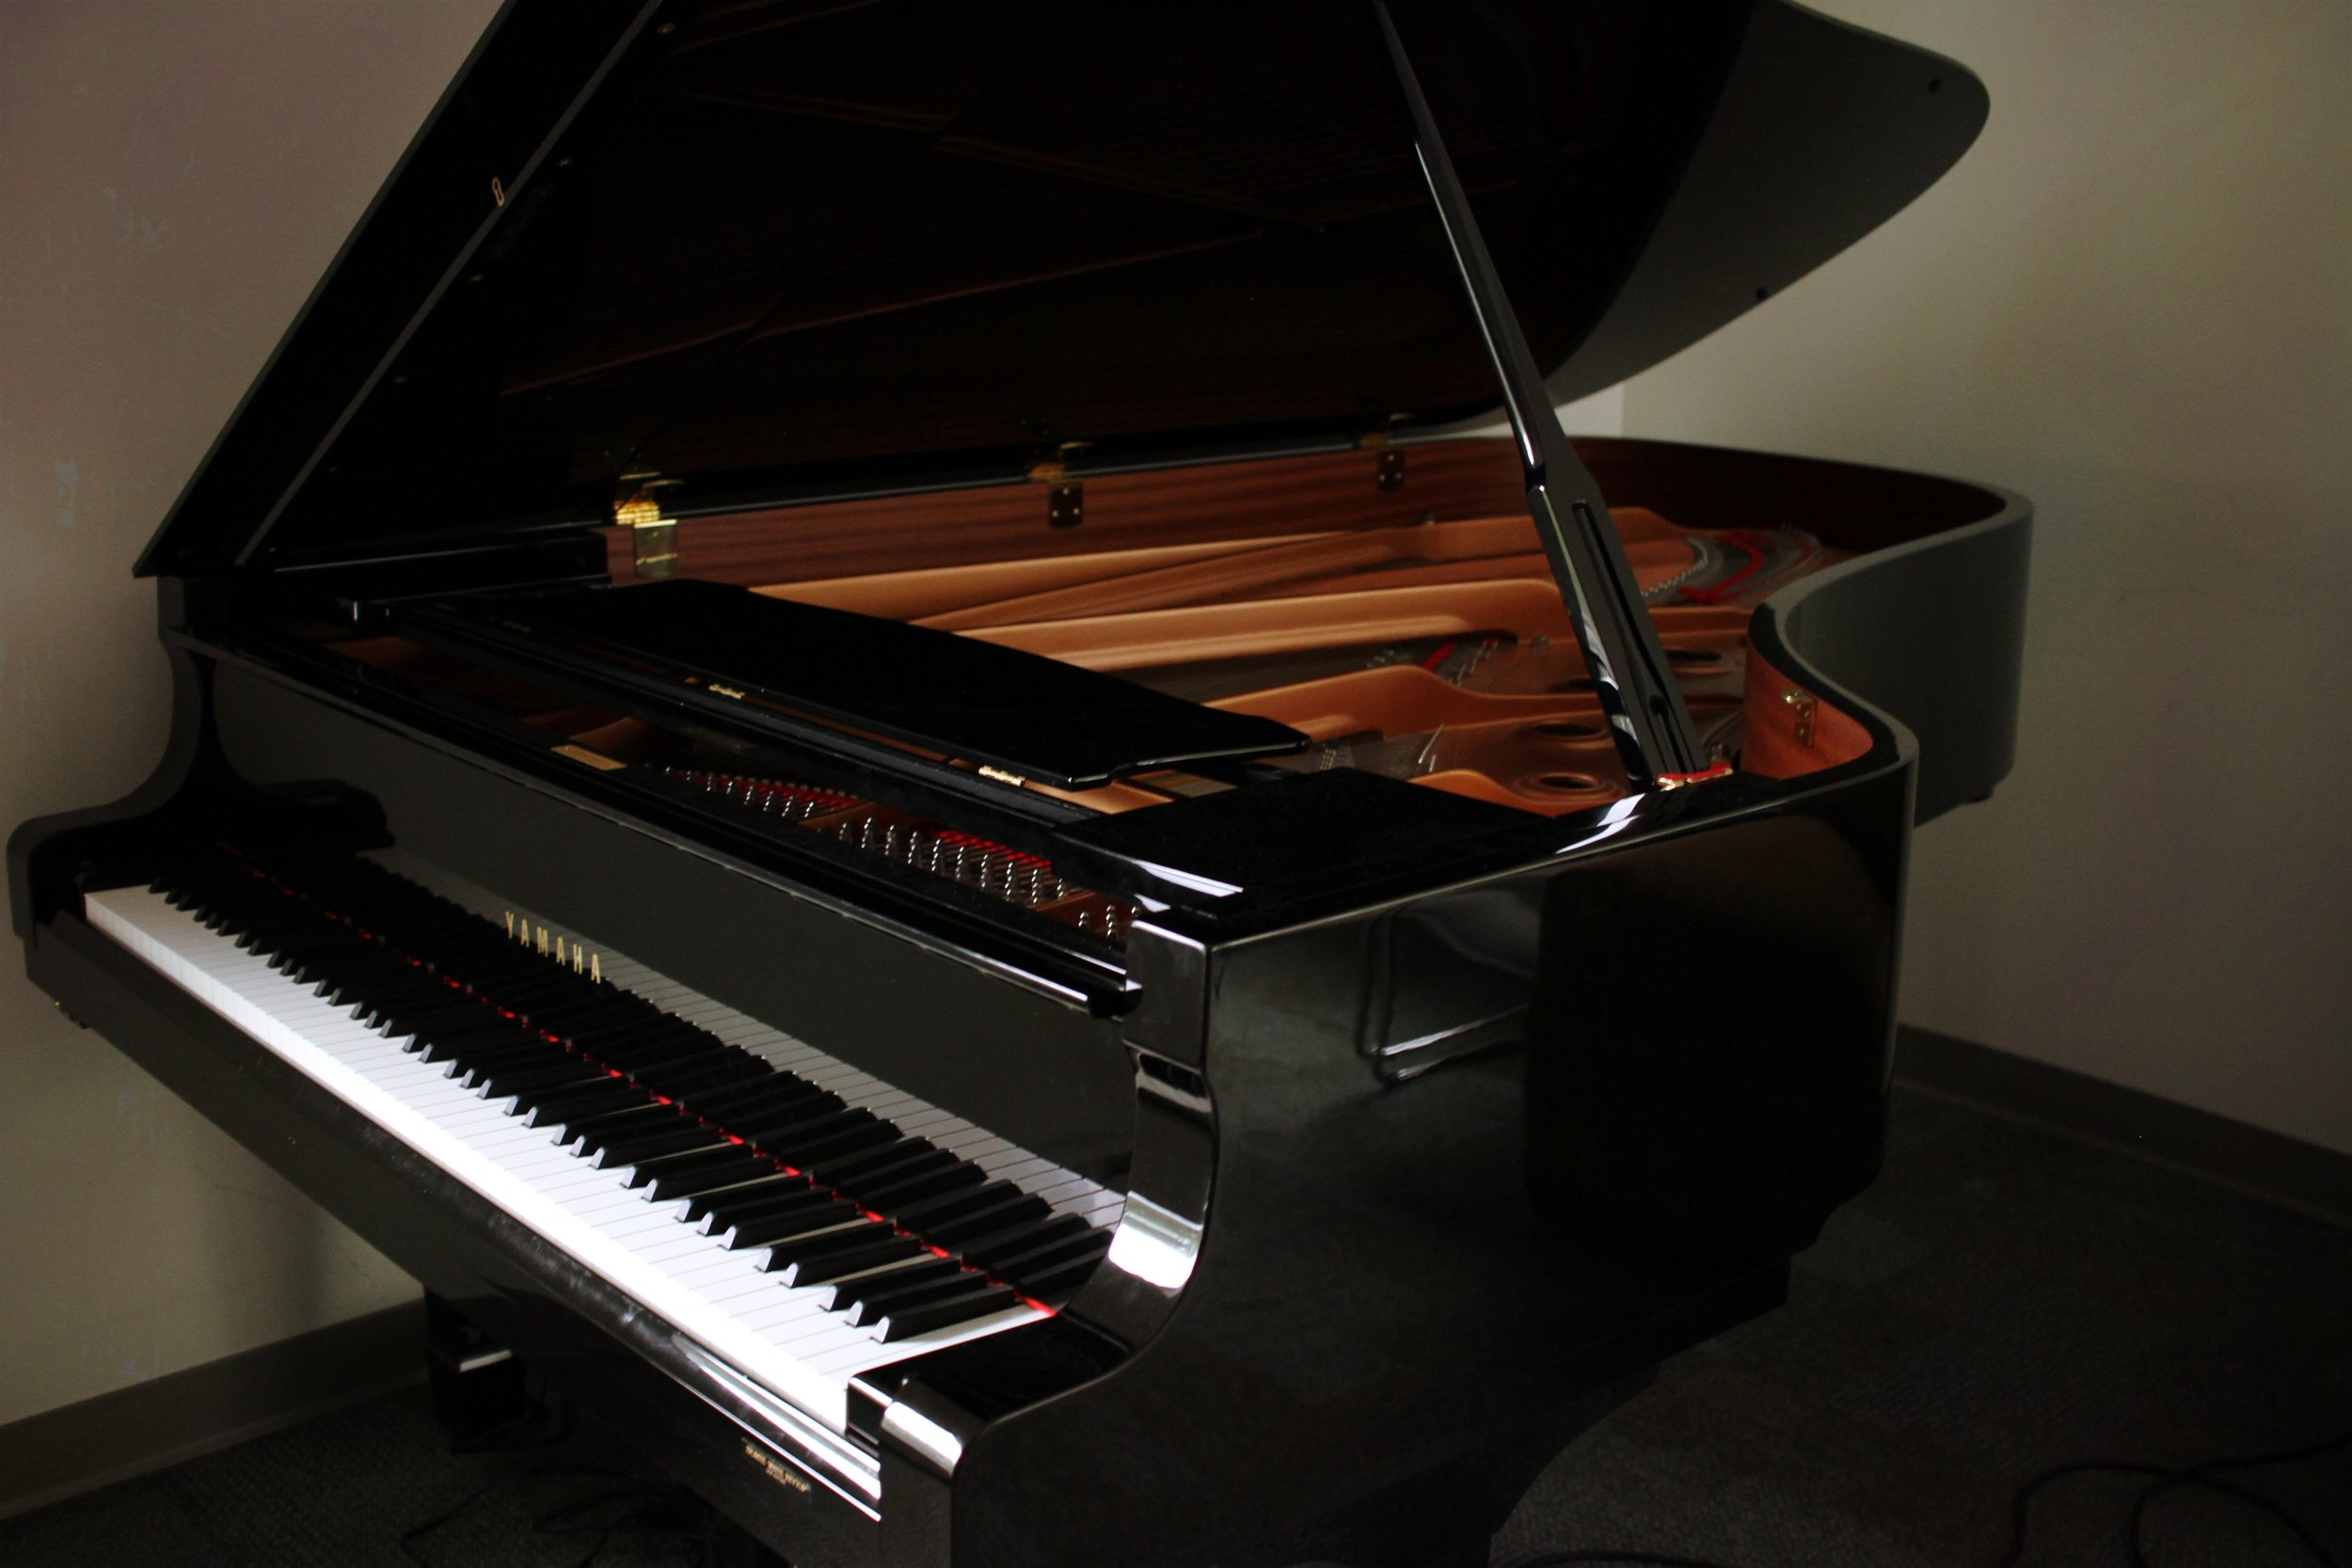 The Yamaha Grand Piano was purchased for the Charlotte Street Arts Centre over a decade ago.